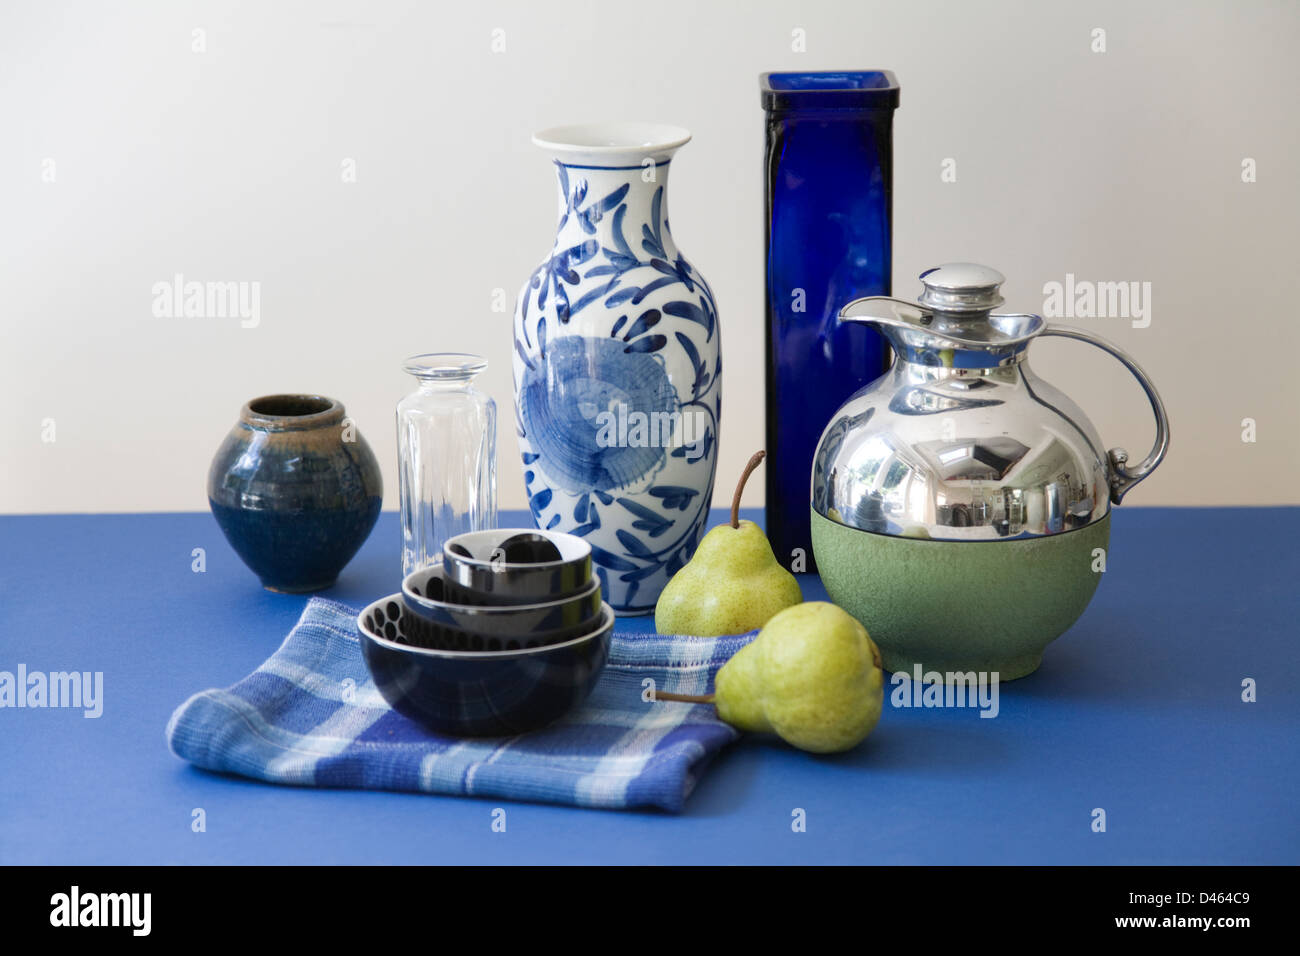 Colour co-ordinated still life of crockery and pears on a blue table with a neutral background - Stock Image